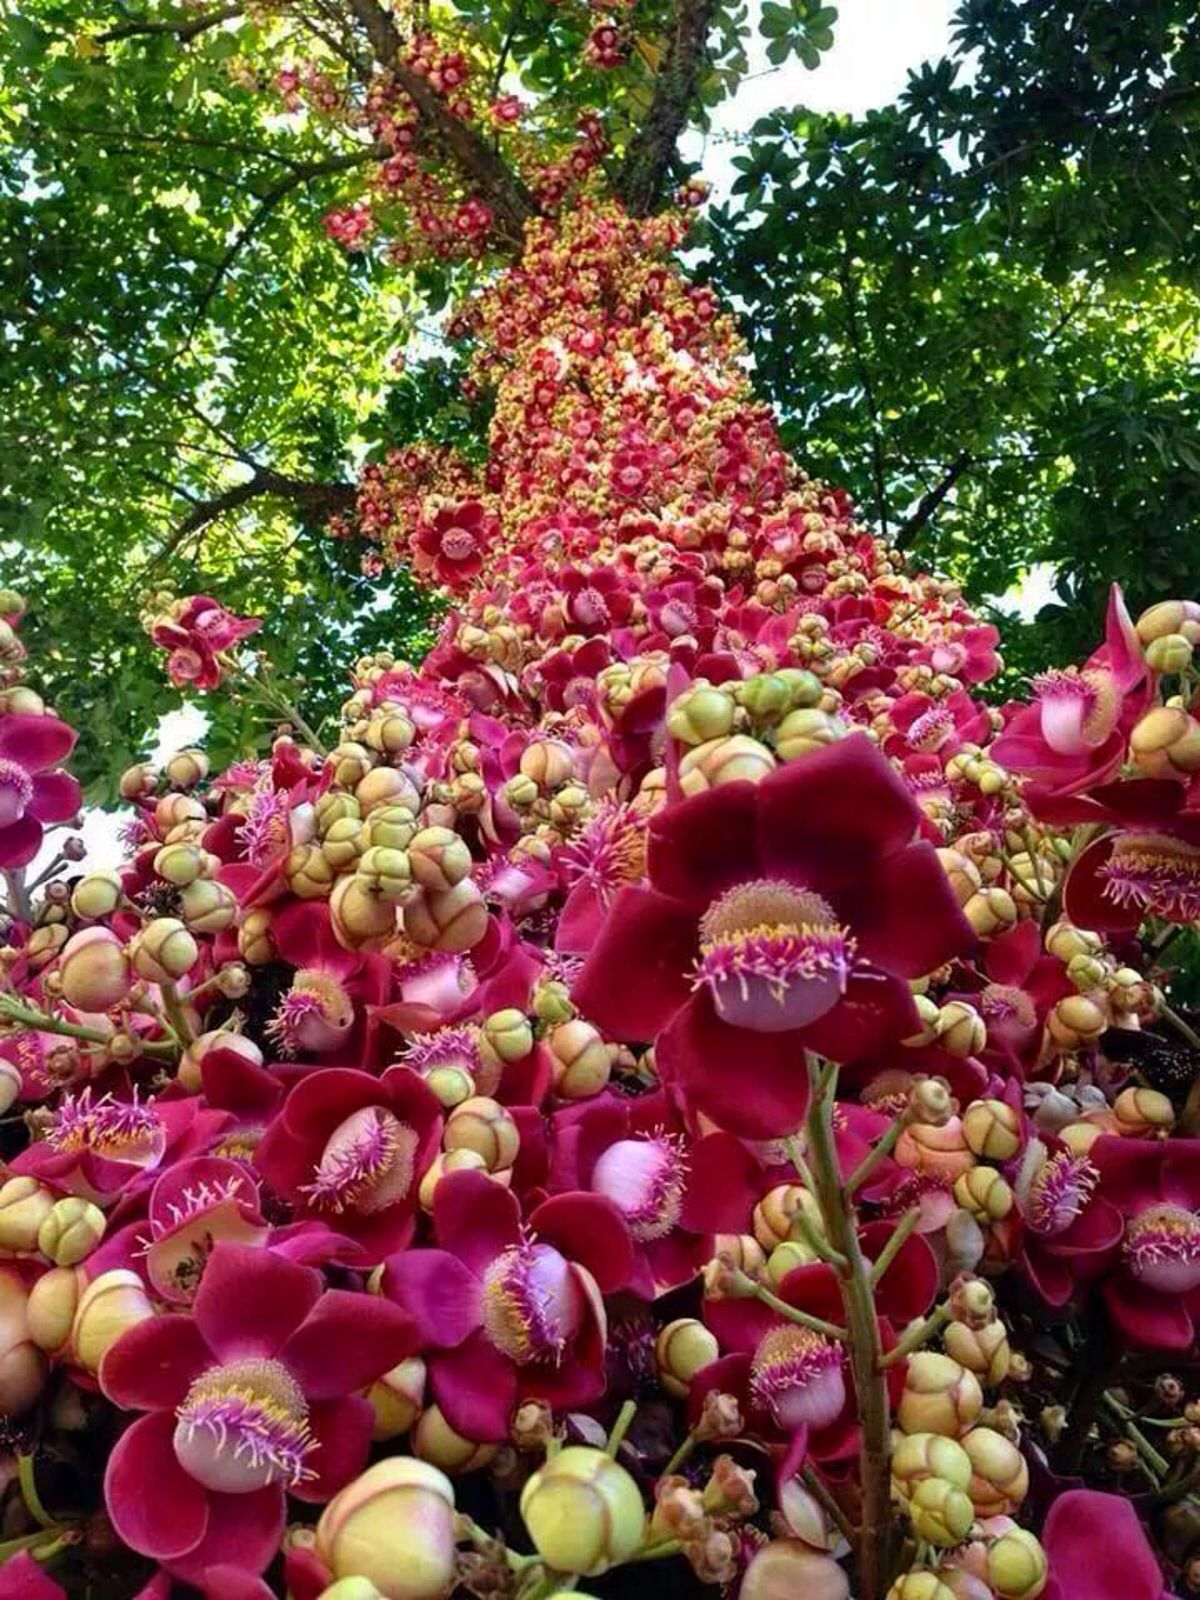 Cannon Ball Tree | Cannon ball tree | Pinterest | Cannon, Flowers ...